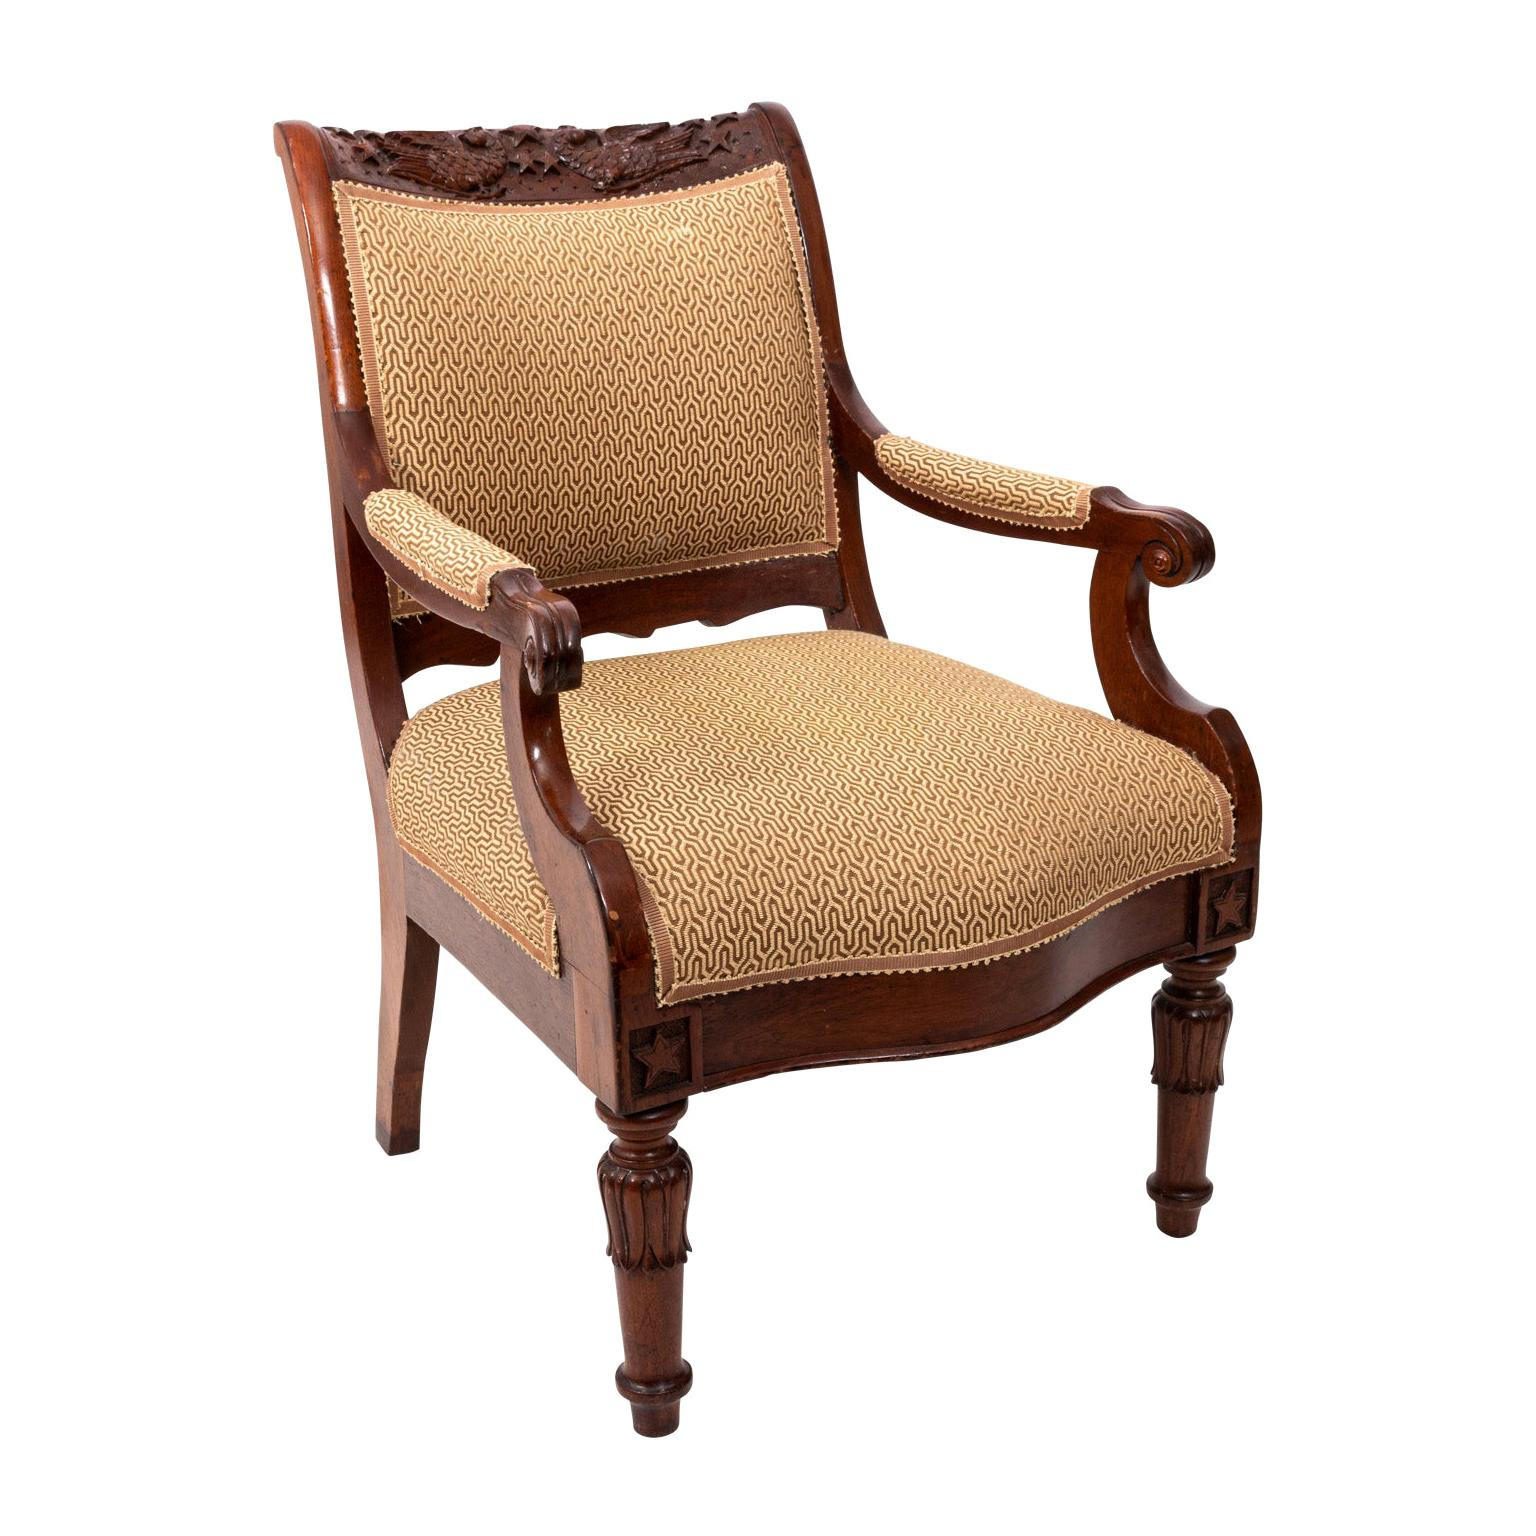 Irish Armchair with Upholstered Seat, circa 19th Century